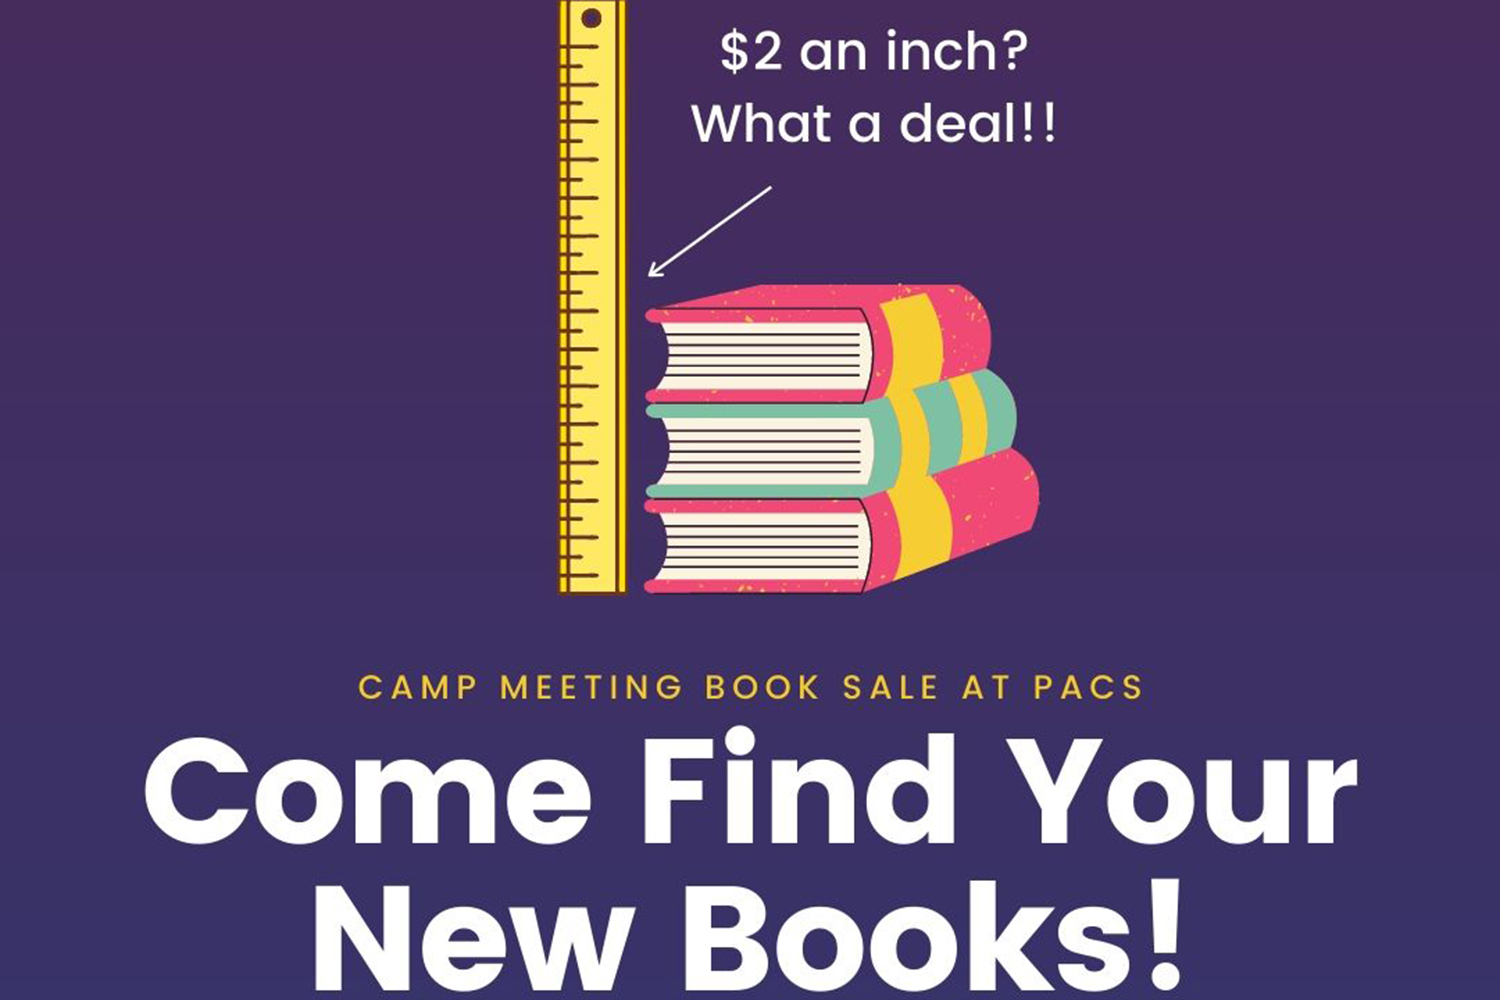 PACS Annual Camp Meeting Book Sale